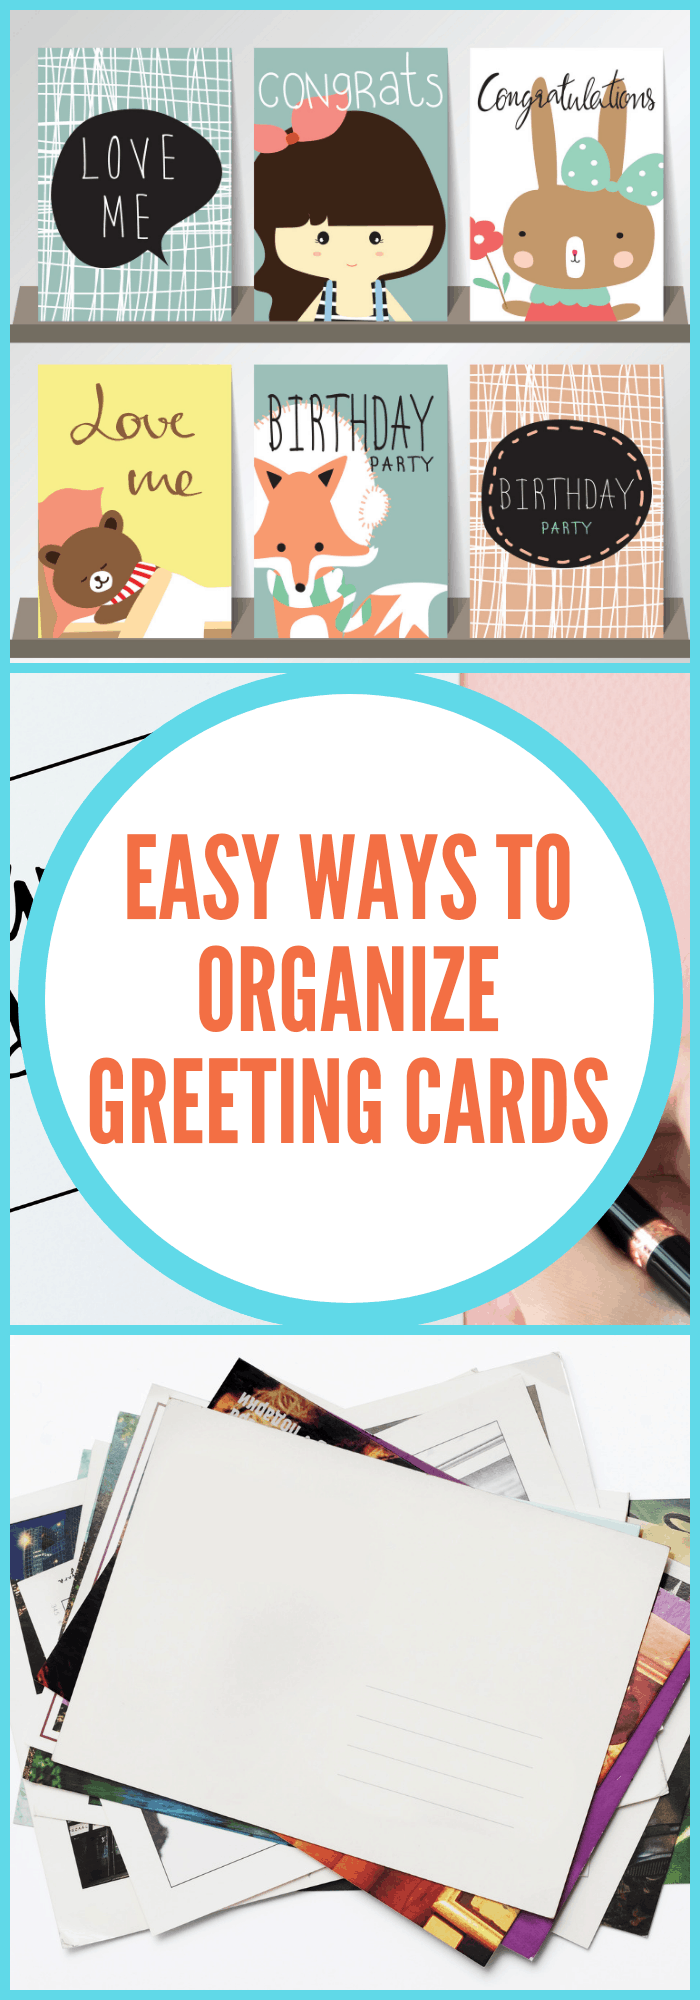 Easy Ways to Organize Greeting Cards